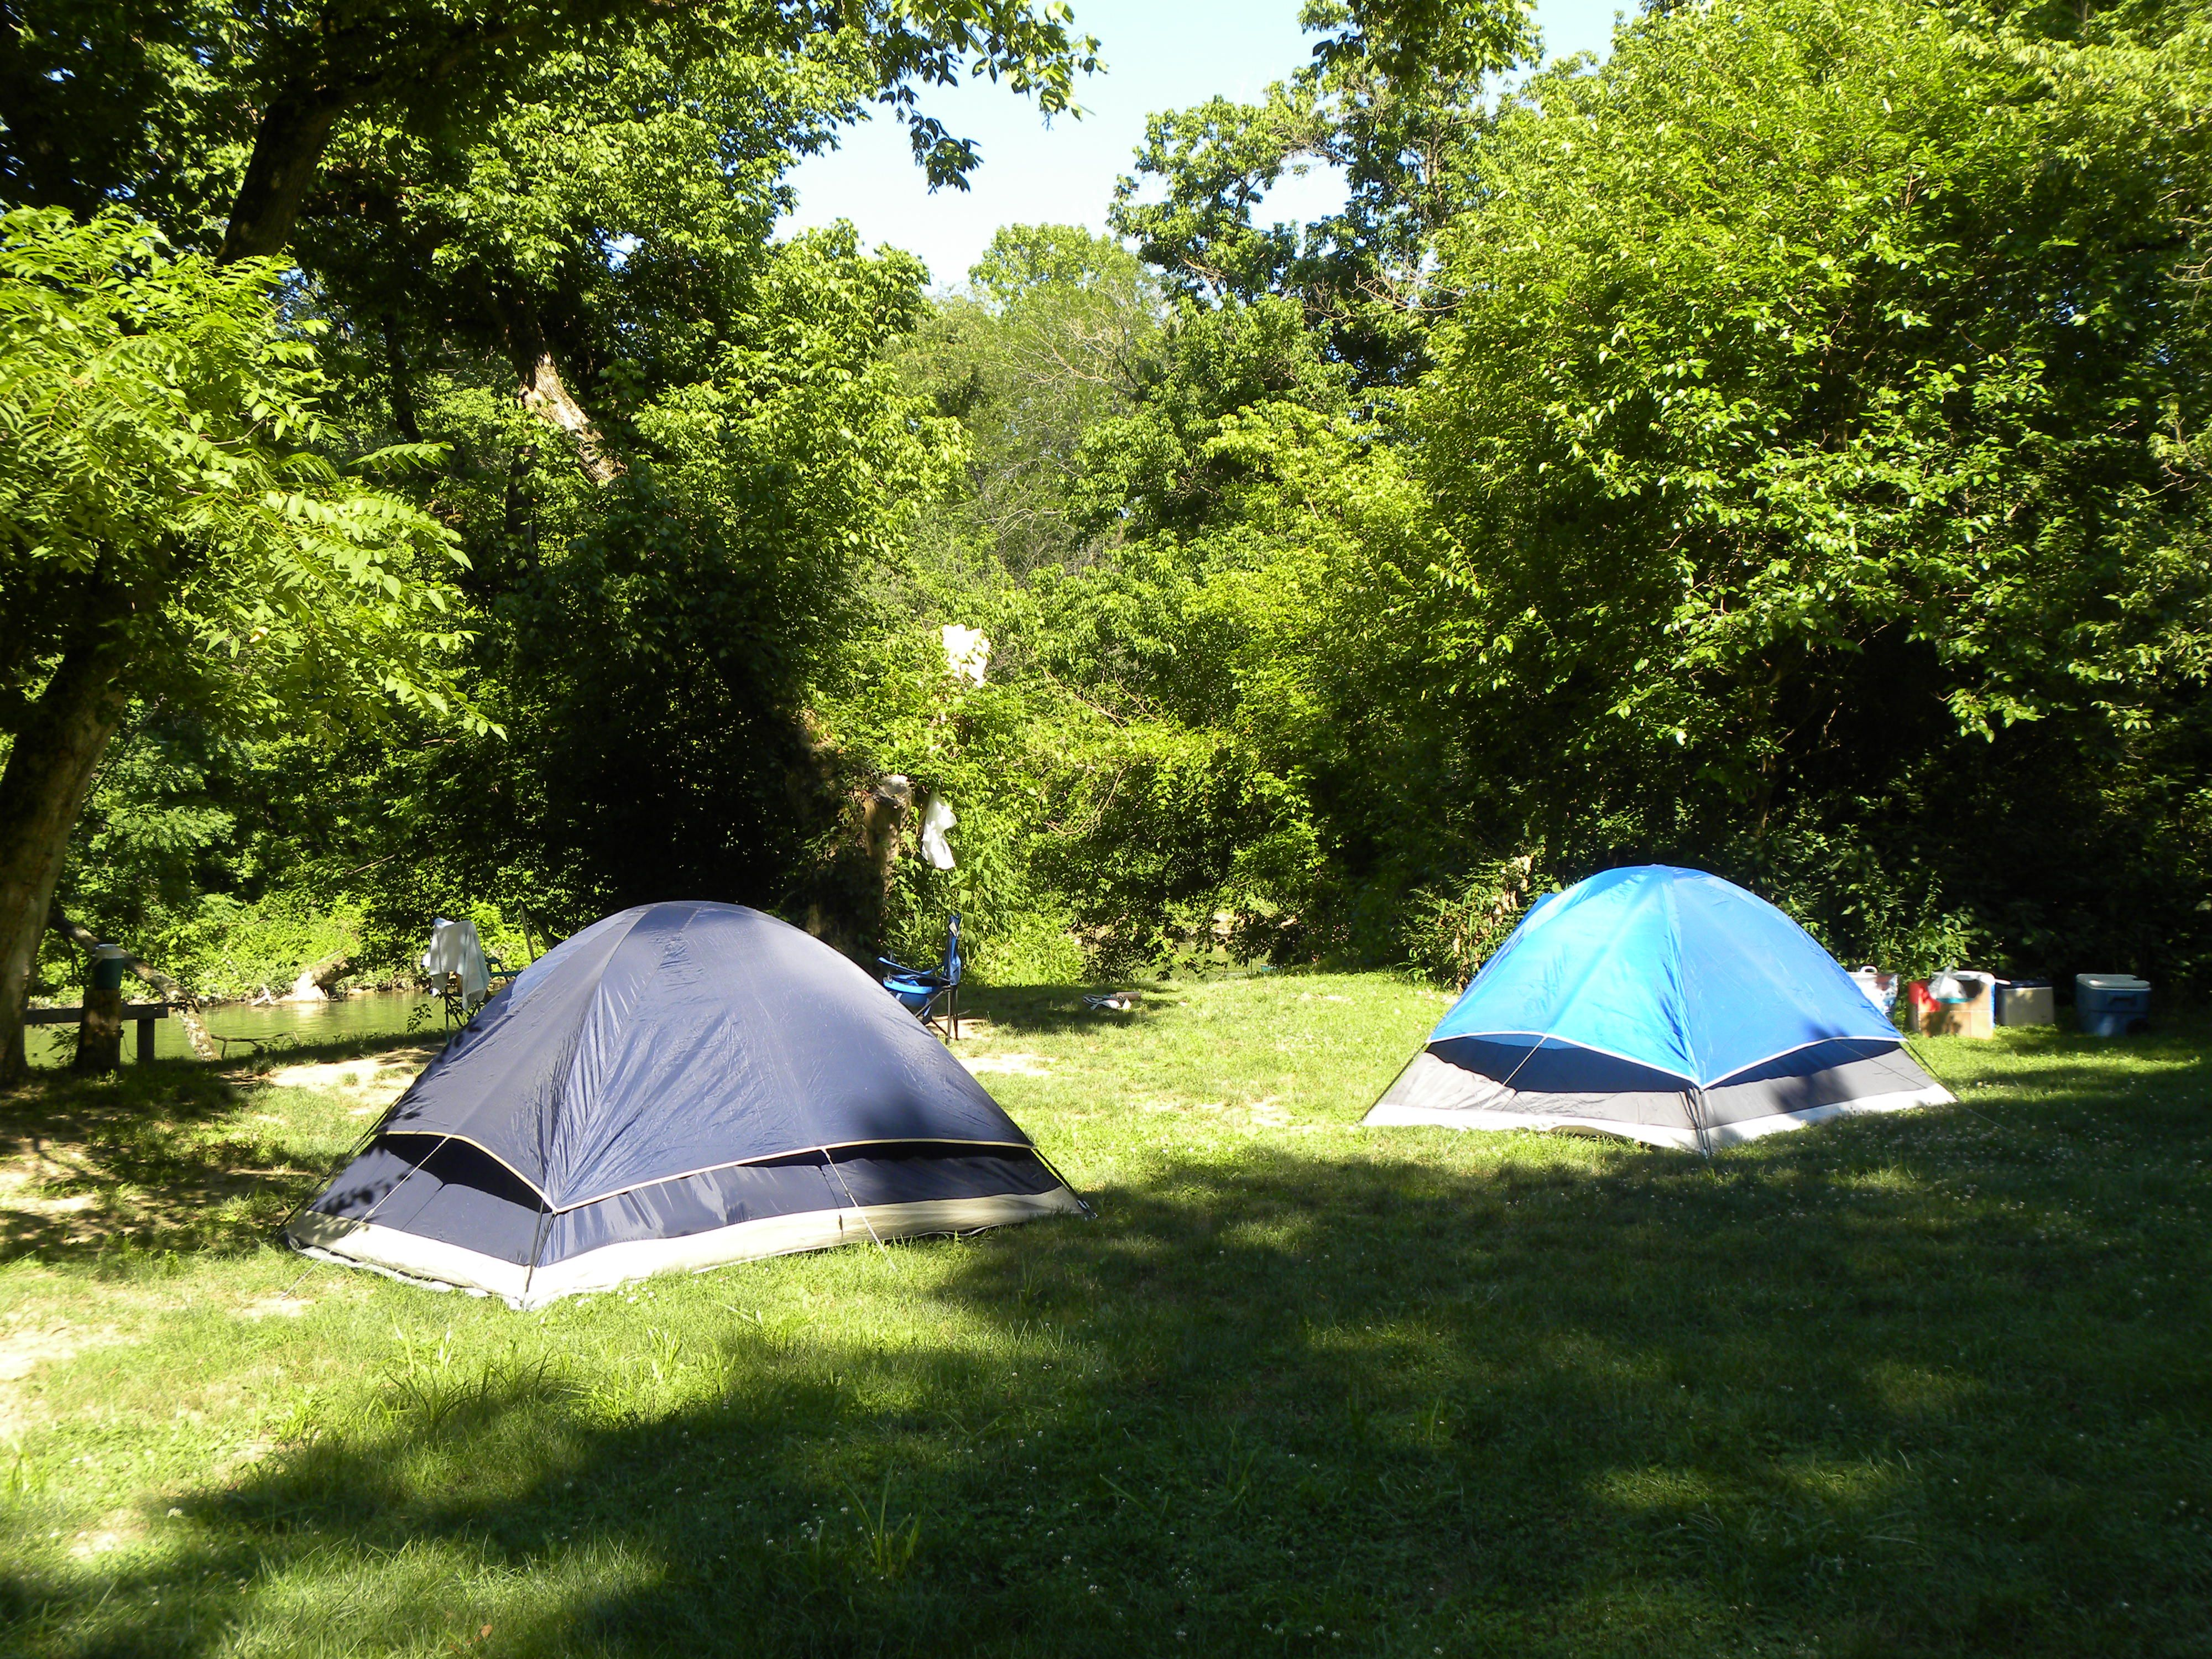 Tent Camping - Hocking Hills Canoe Livery   Tent camping ...